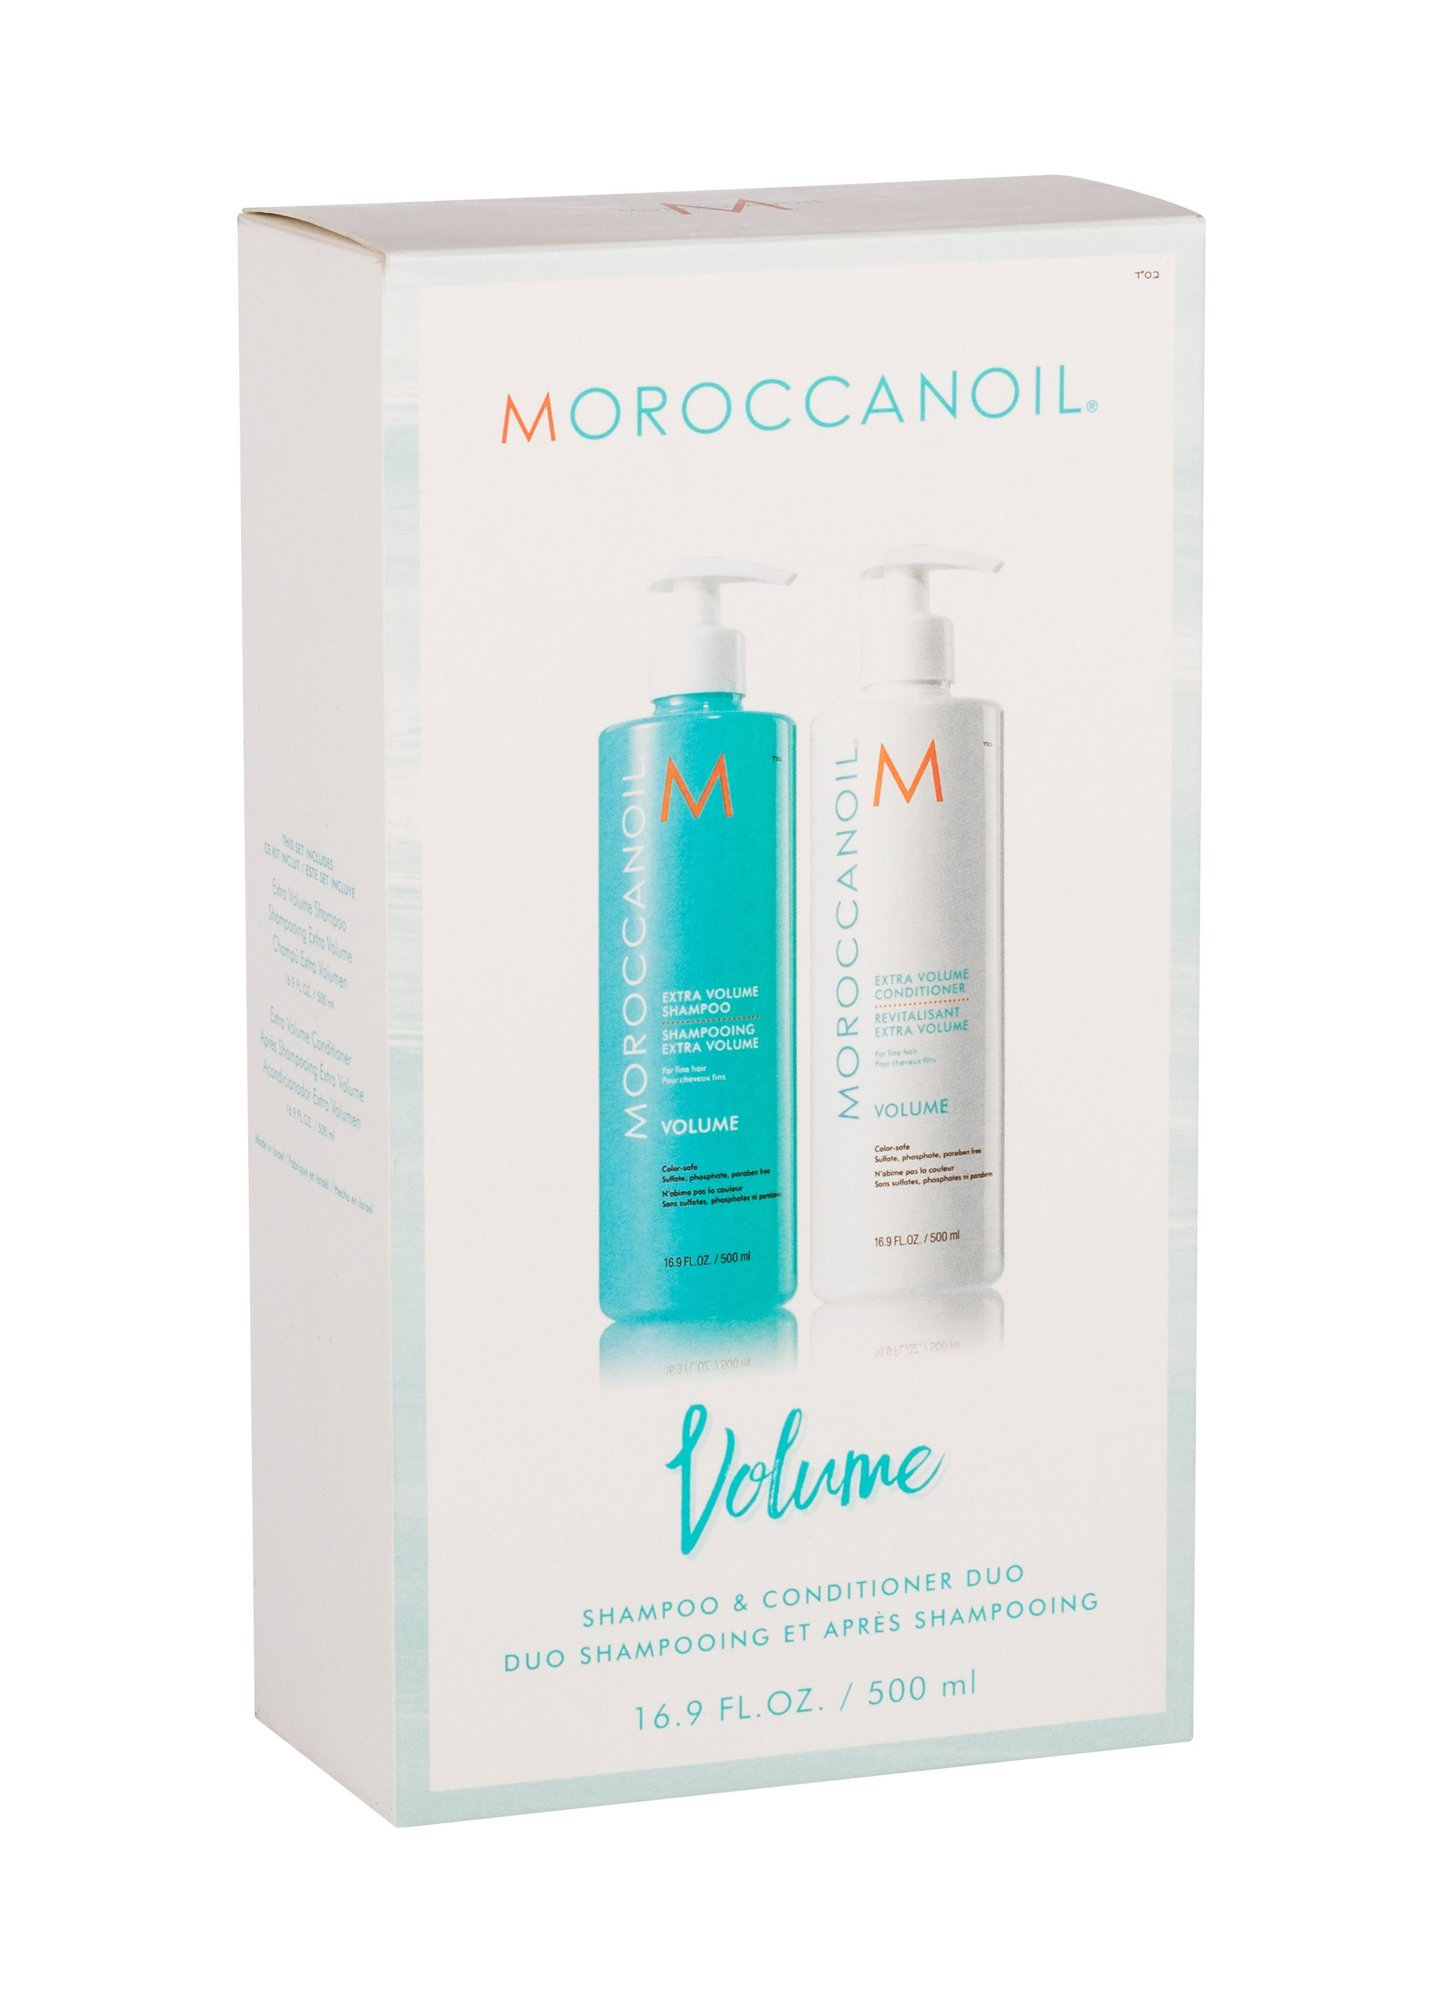 Moroccanoil Volume Shampoo 500ml